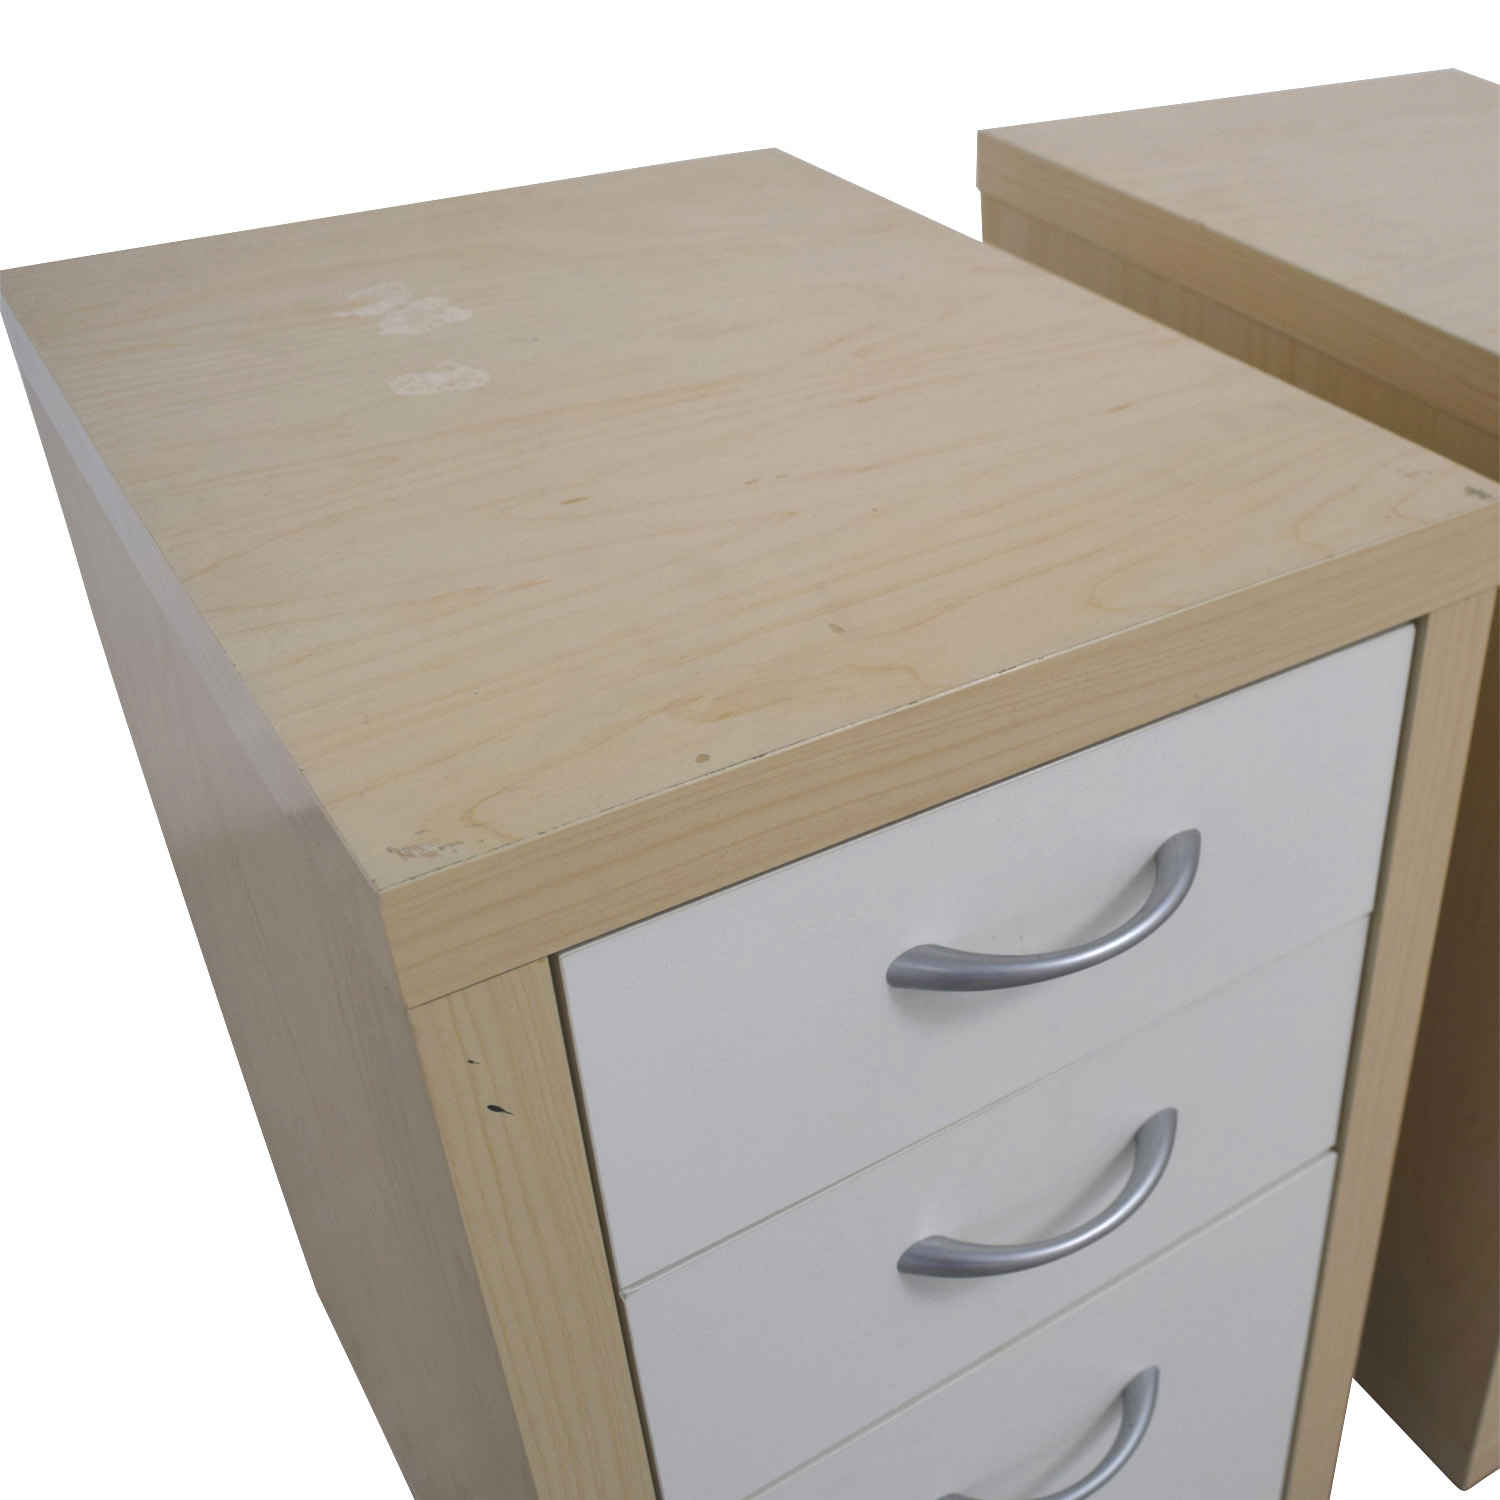 Natural and White Three-Drawer Filing Cabinets for sale